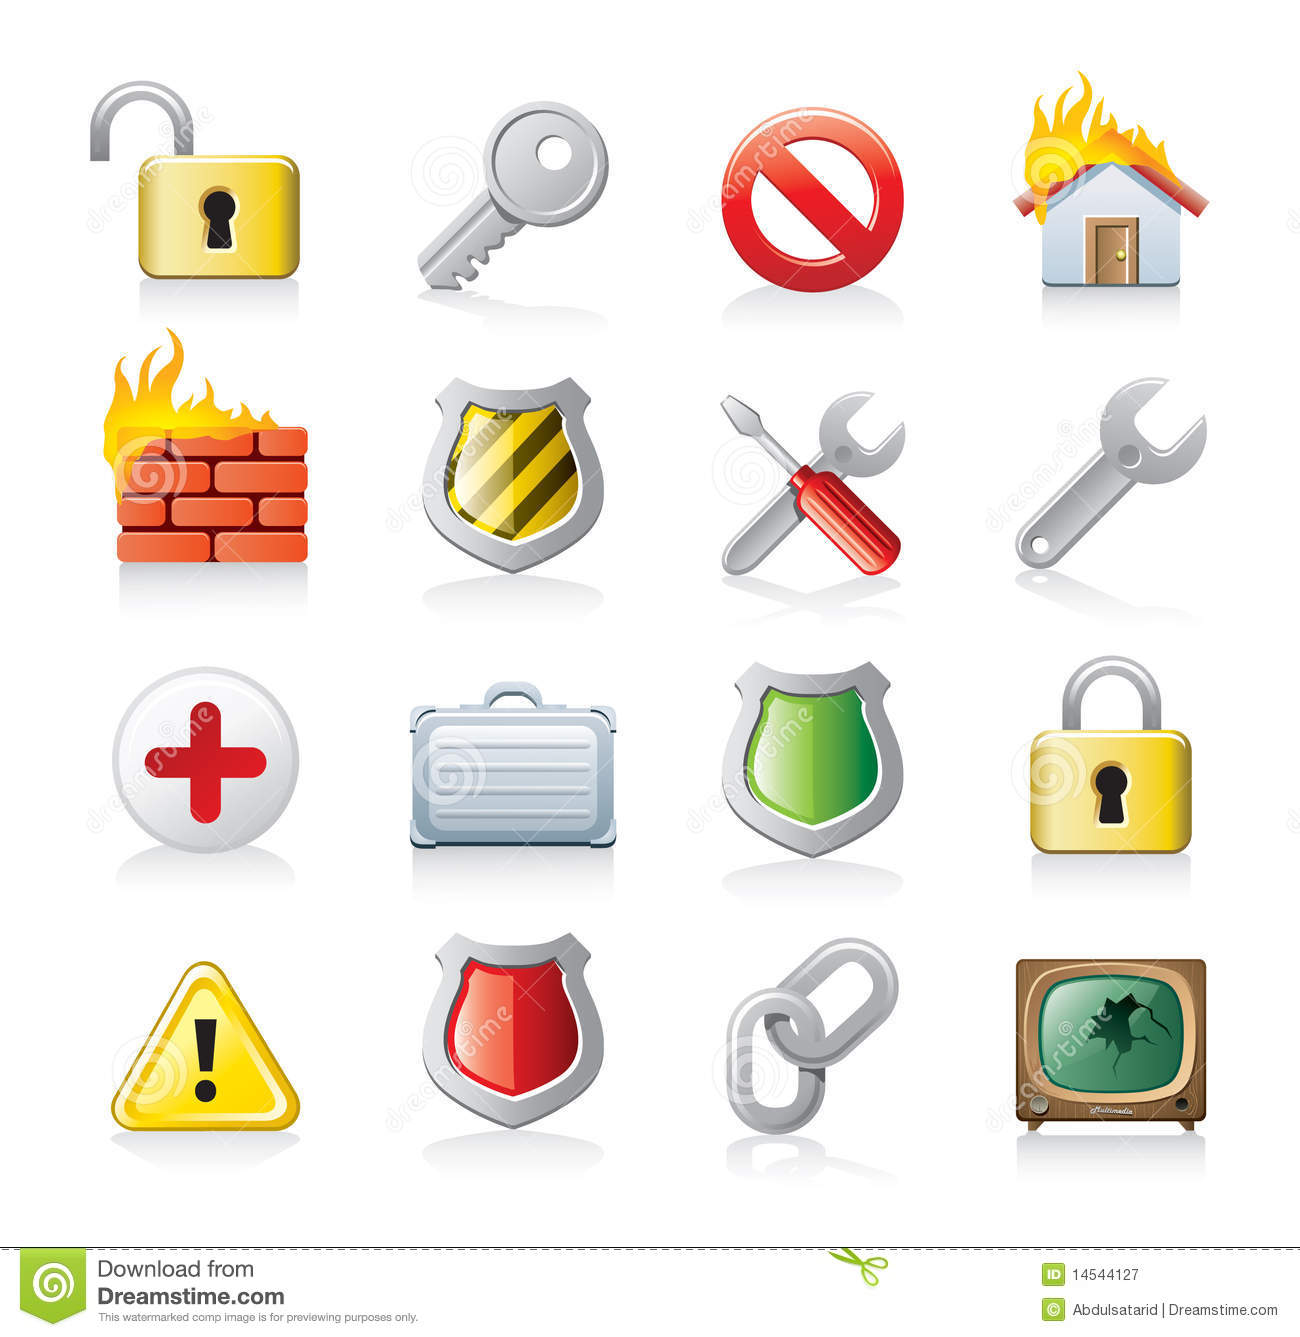 Computer security icon set stock vector. Image of firewall ...